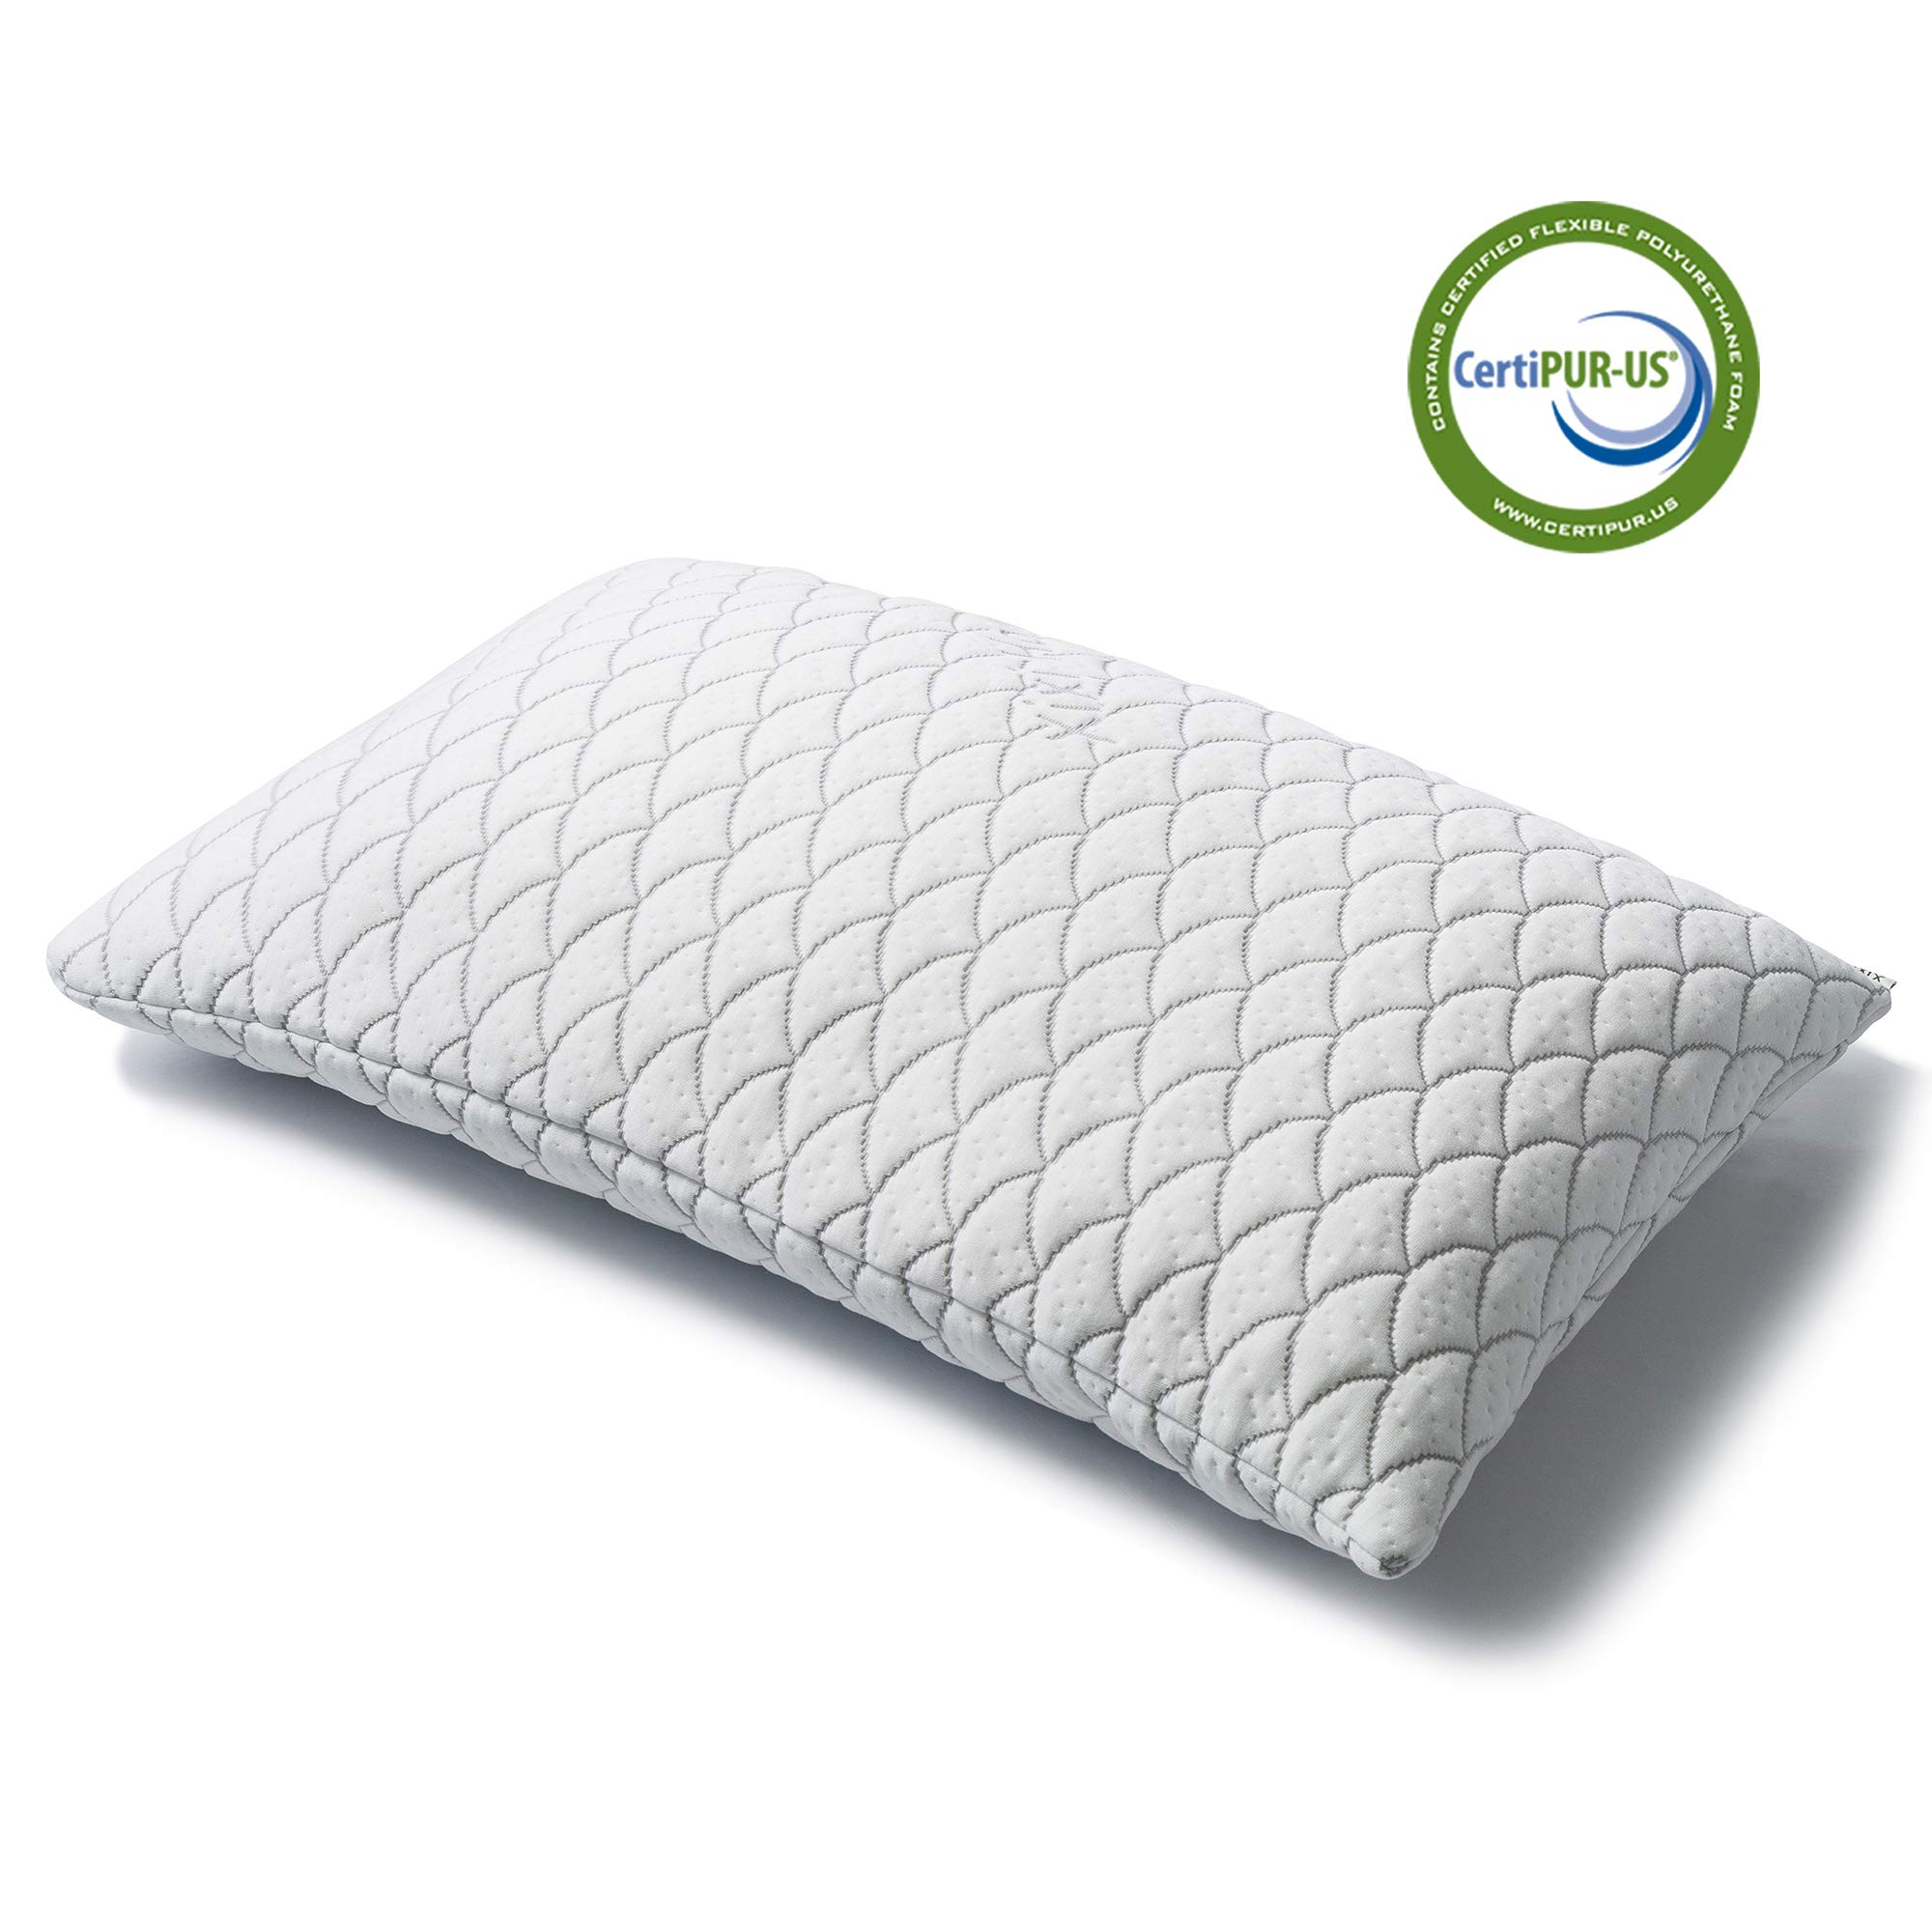 Xixi Home CERTIPUR-US Adjustable Hypoallergenic Shredded Memory Foam Pillow, Original Memory Foam Stuffed Pillow Dust Mite Resistant Bamboo Cover, Neck and Shoulder Pain Relief (King)